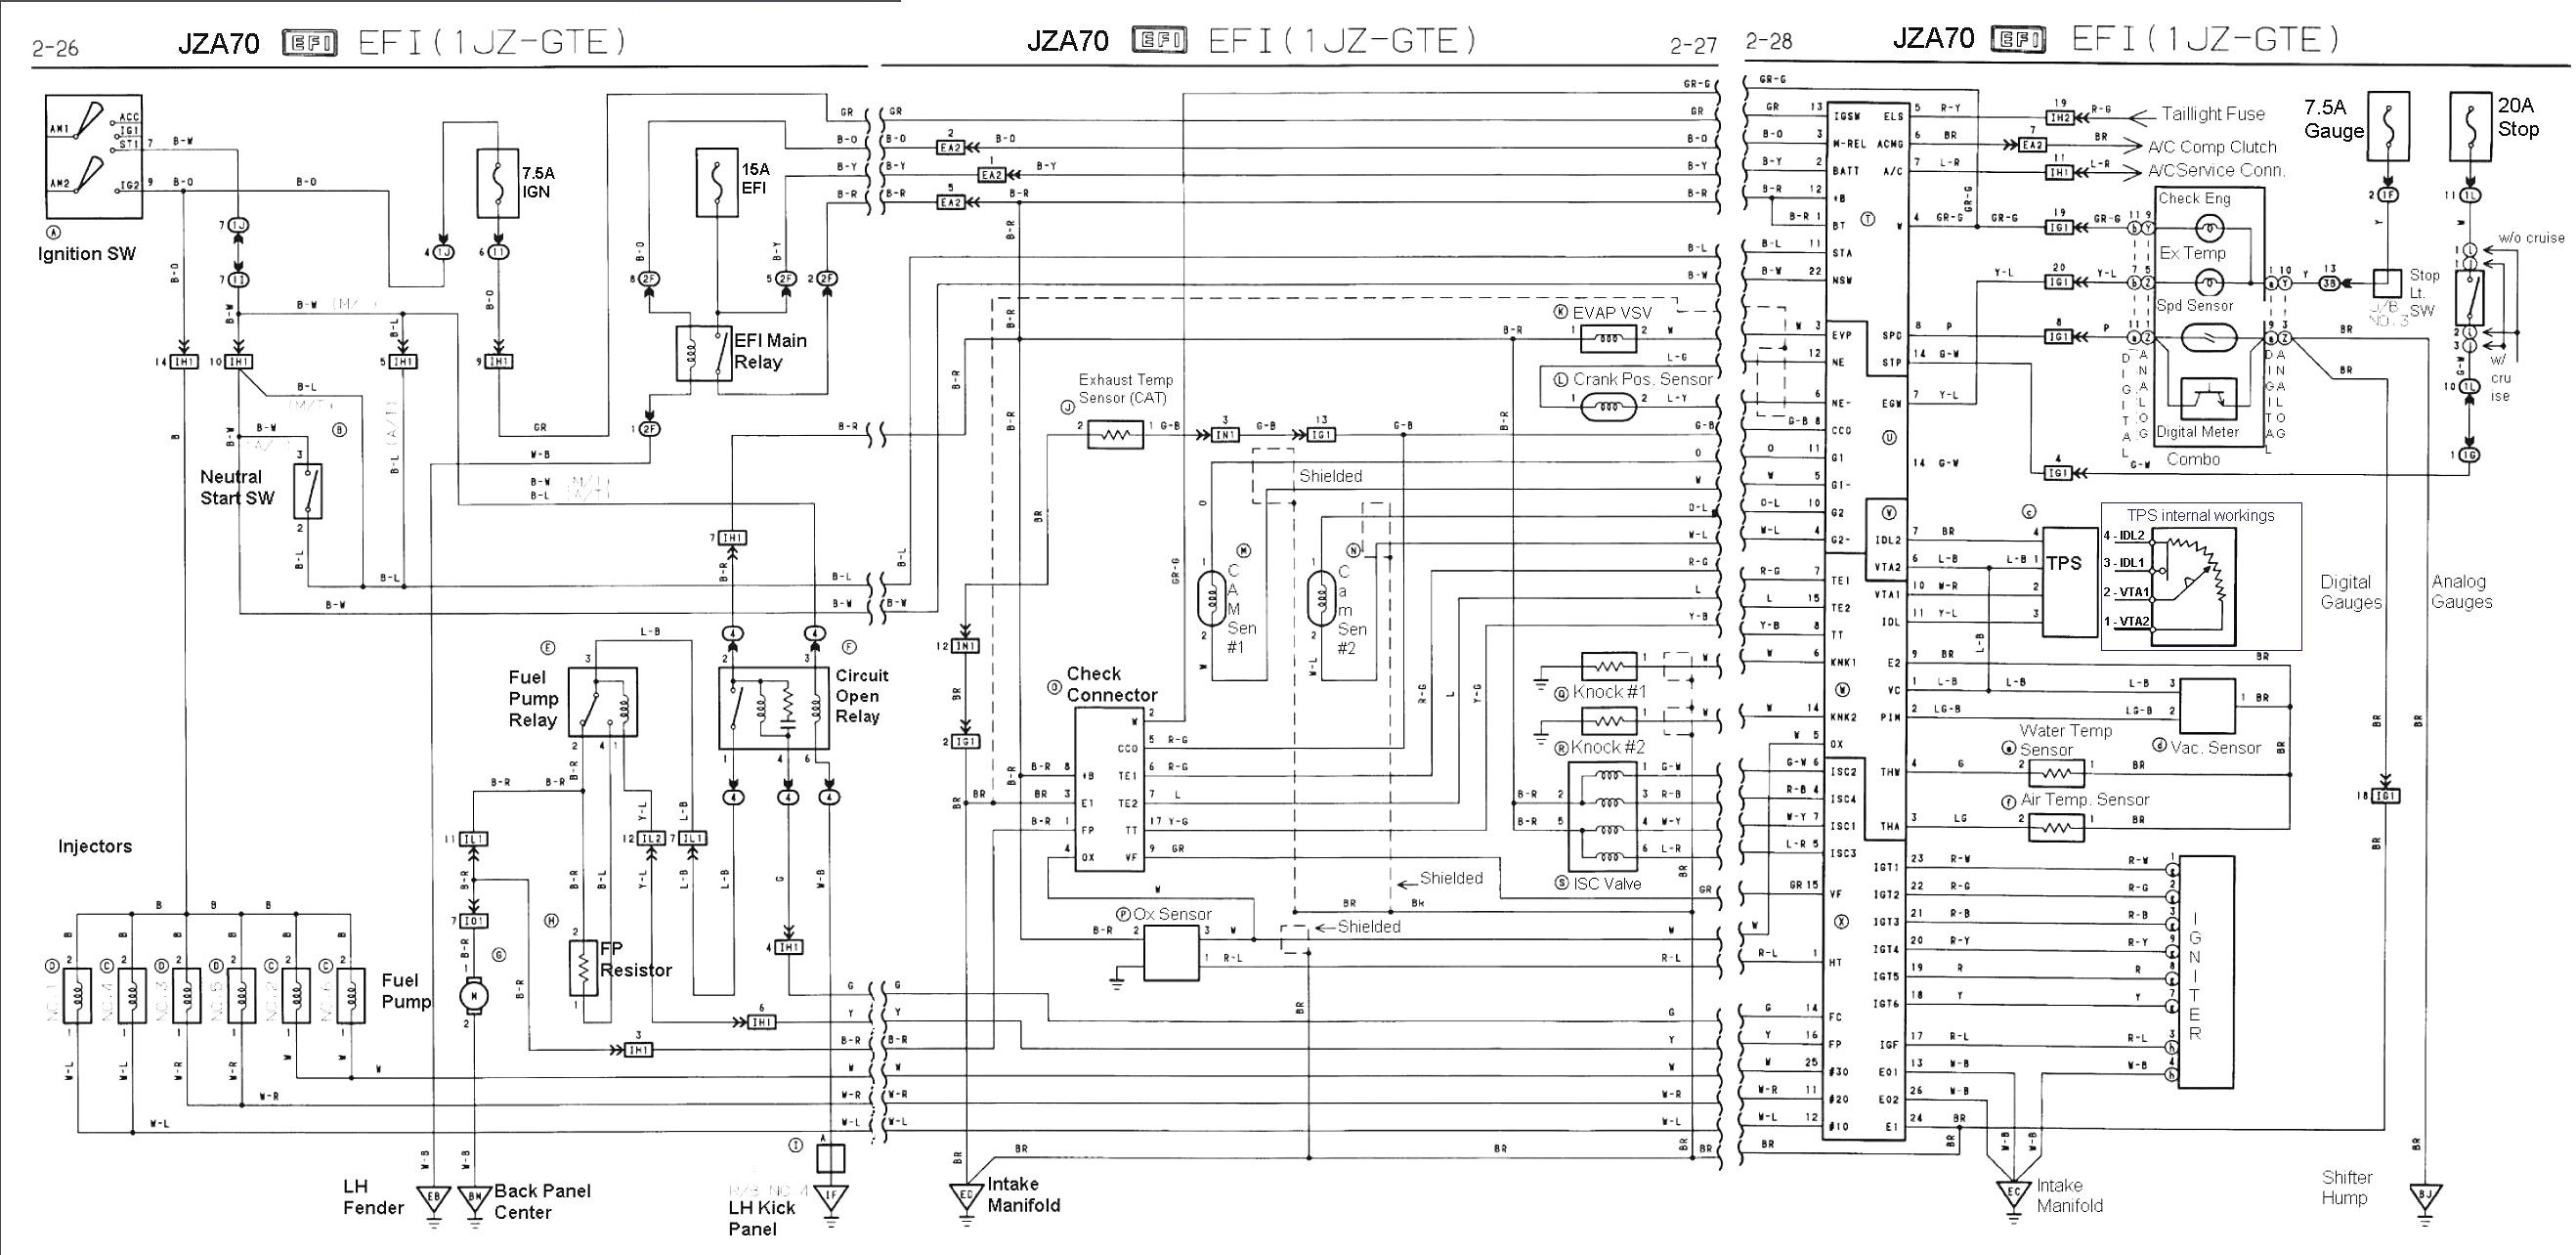 99 bmw 528i wiring diagram - wiring diagram name zone-normal-a -  zone-normal-a.agirepoliticamente.it  agire politicamente